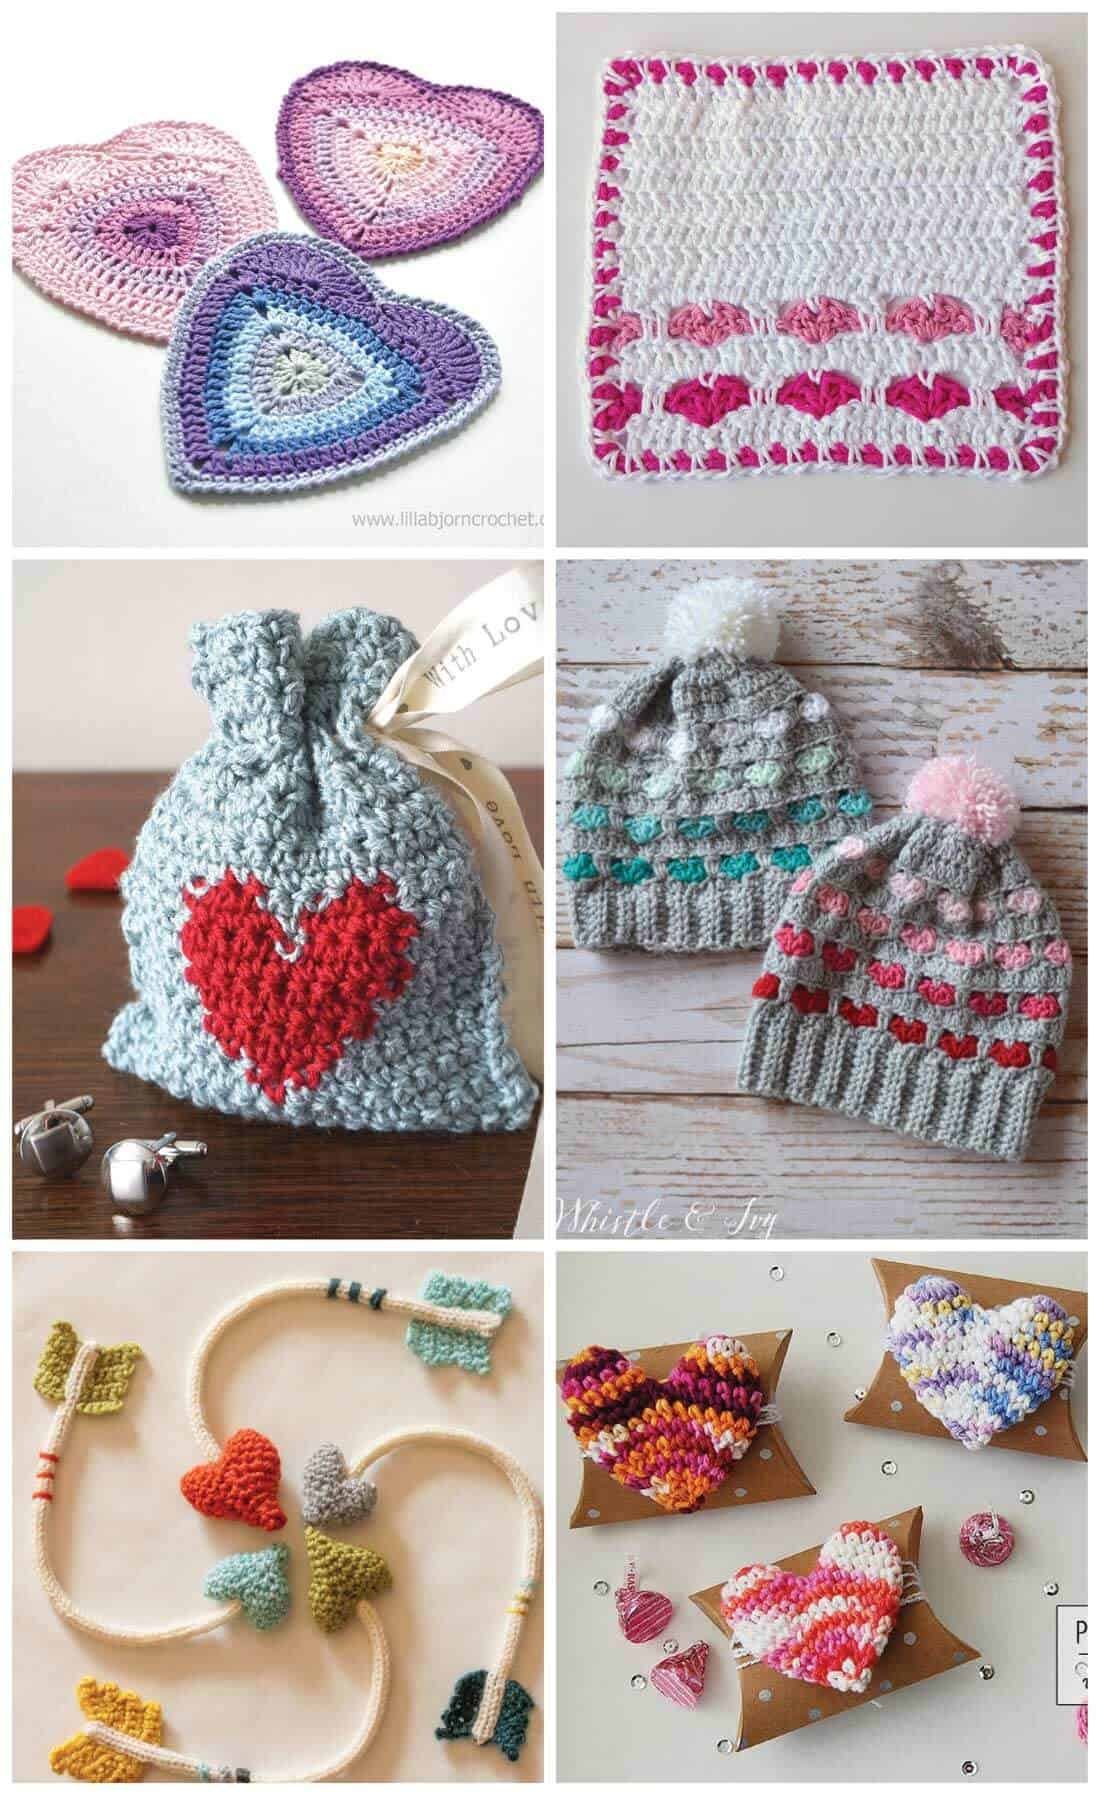 Crochet Heart Patterns For Valentine S Day Daisy Cottage Designs